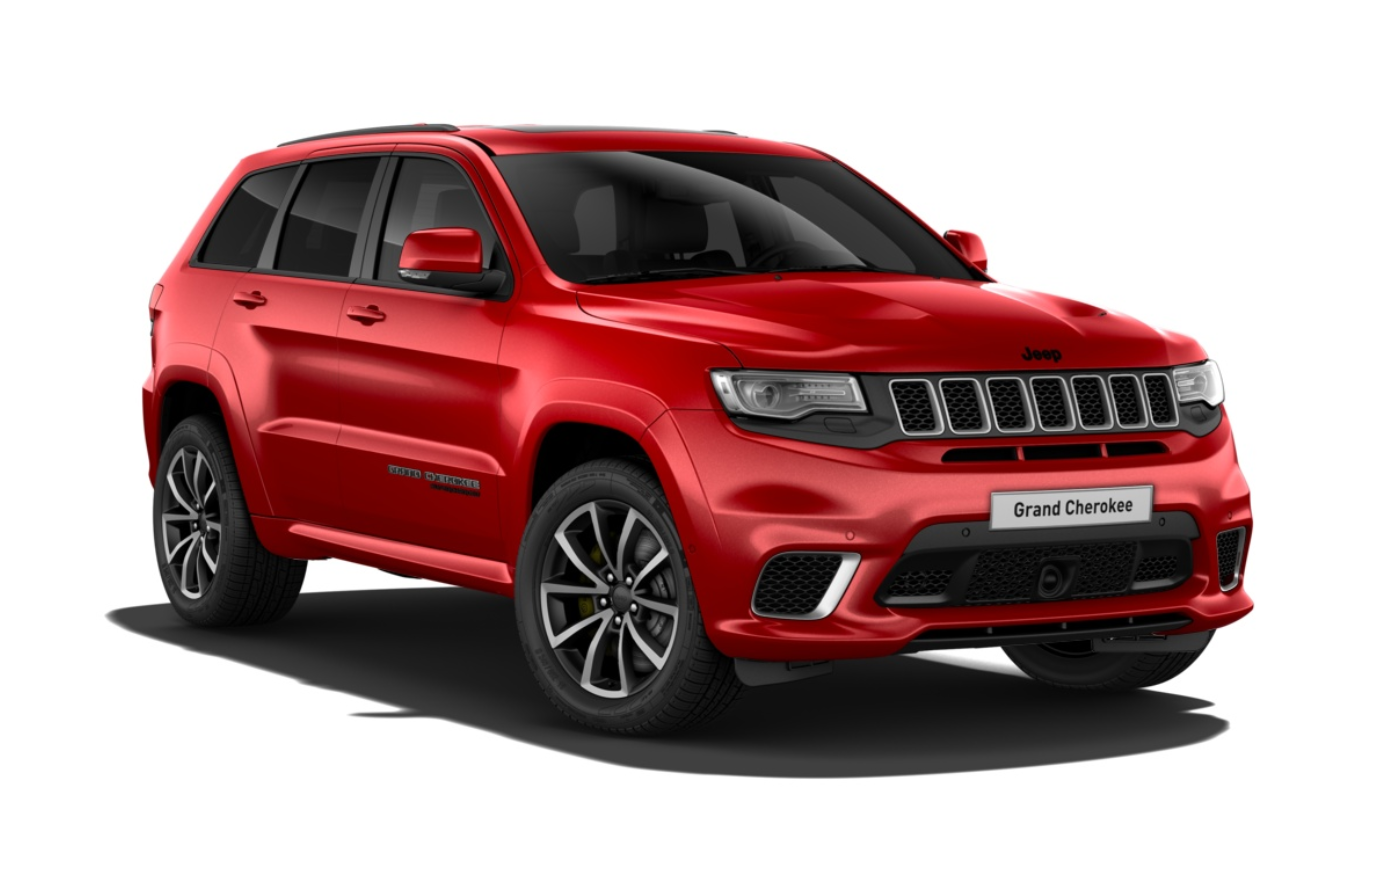 Jeep Grand Cherokee 6.2 V8 HEMI Supercharged Trackhawk 5dr Auto